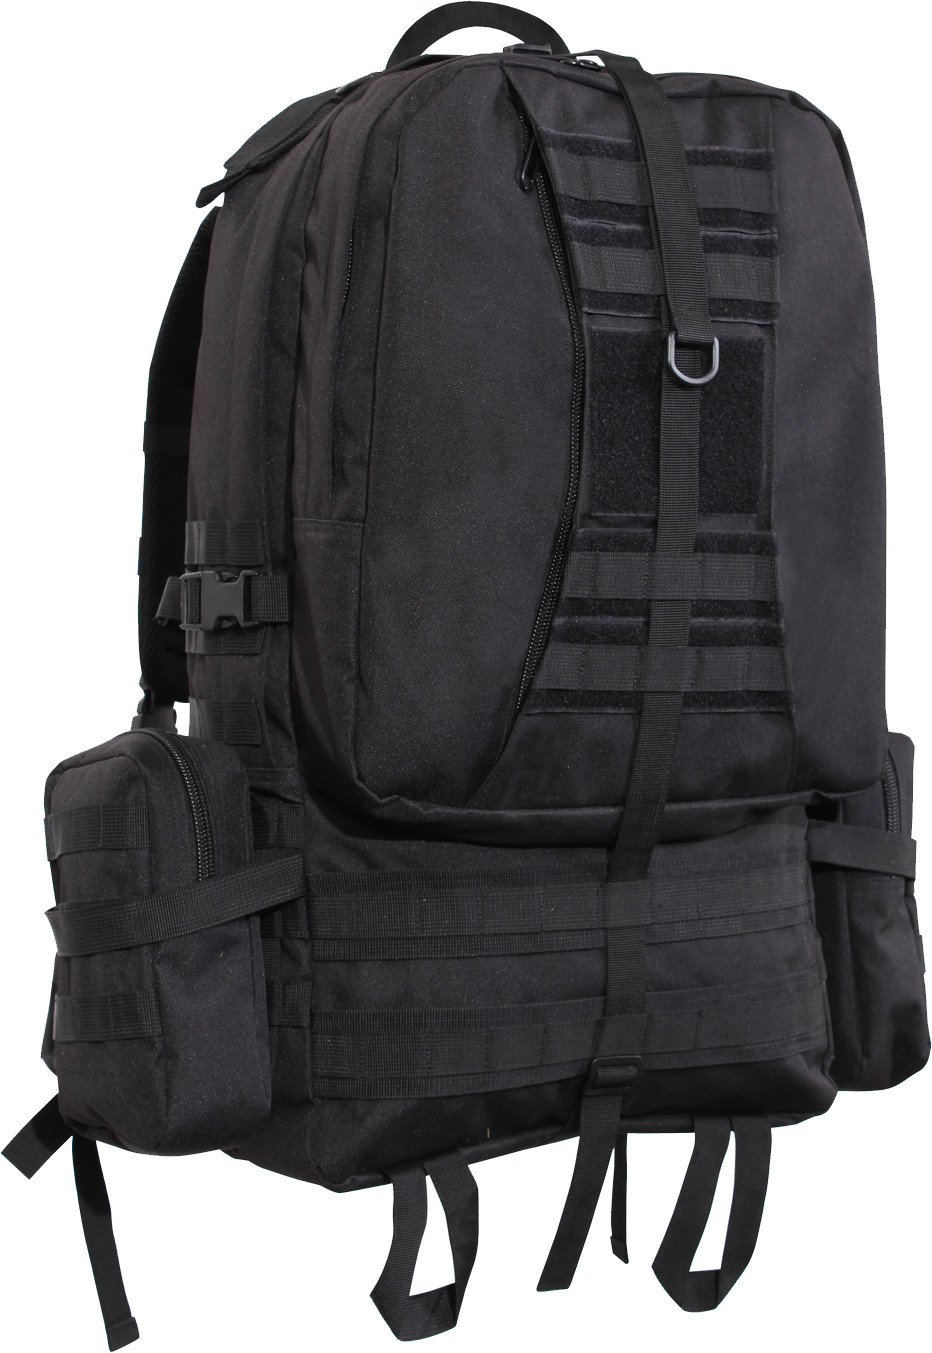 Black Military MOLLE Concealed Carry Global Tactical Assault Pack 08c8fd70a05